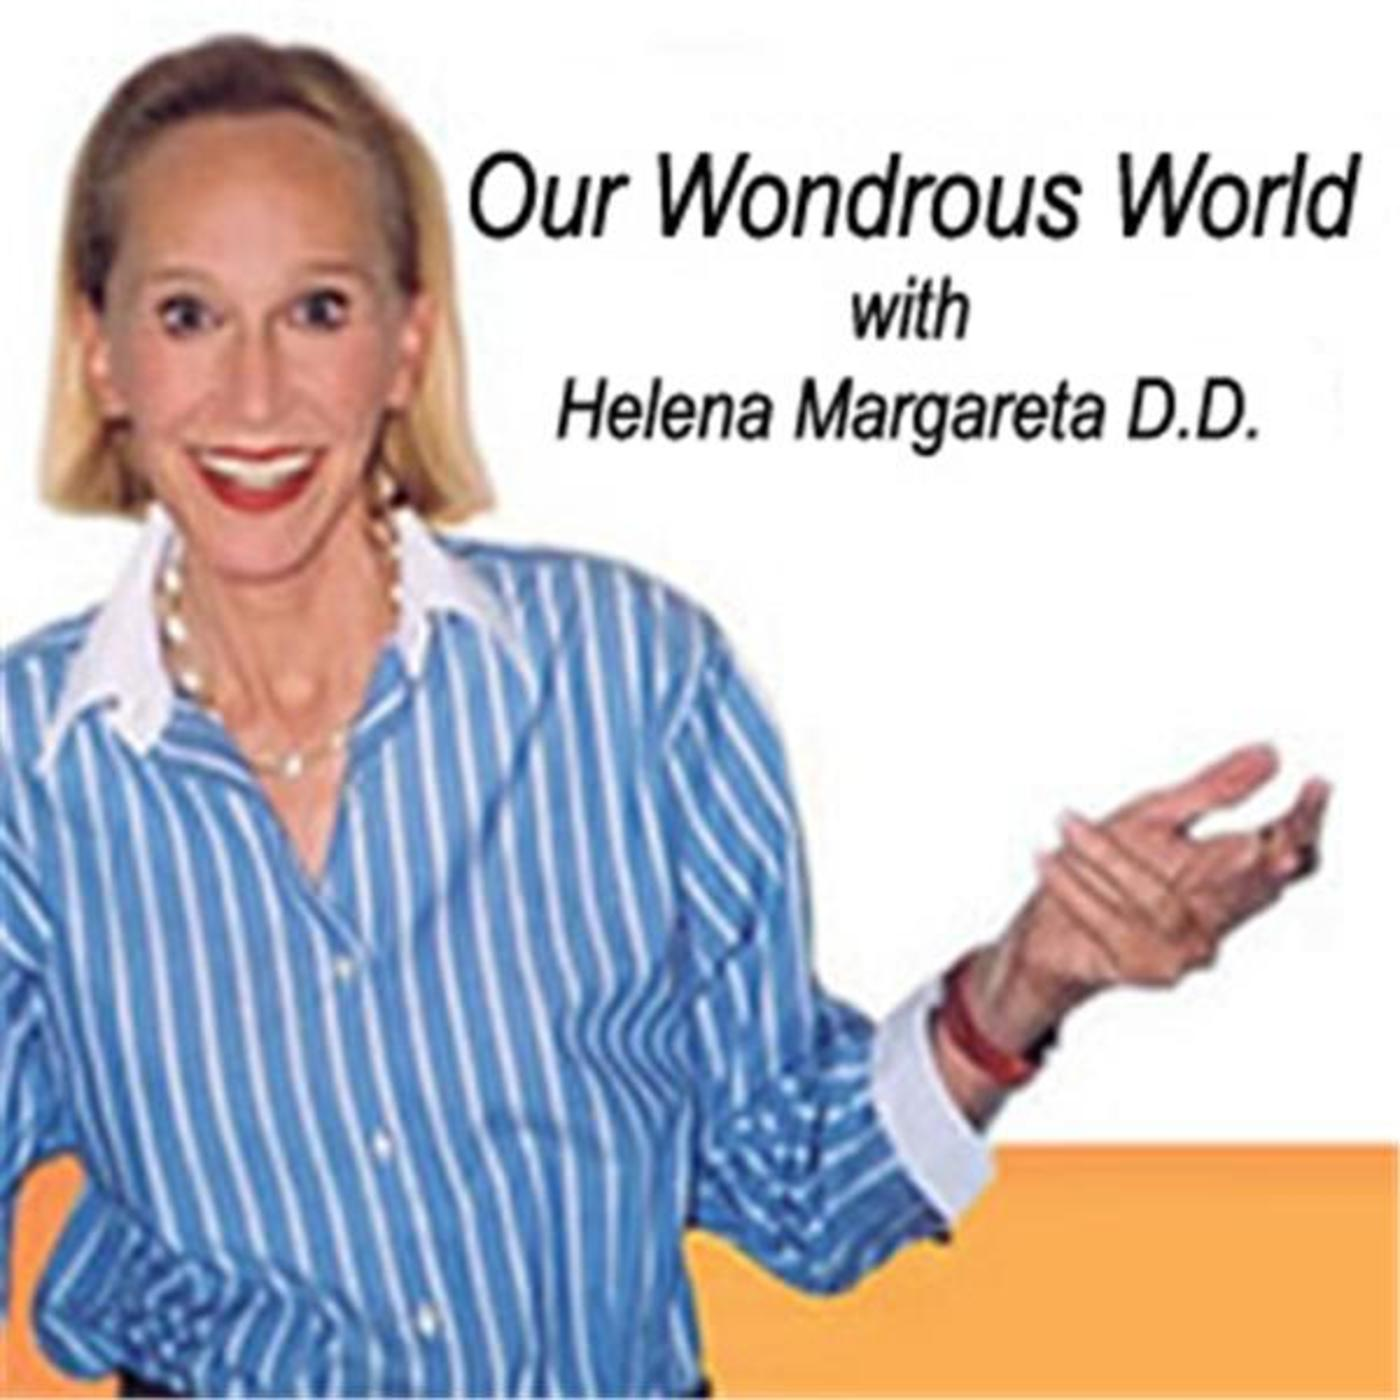 Our Wondrous World with Helena Margareta on Sedona Talk Radio